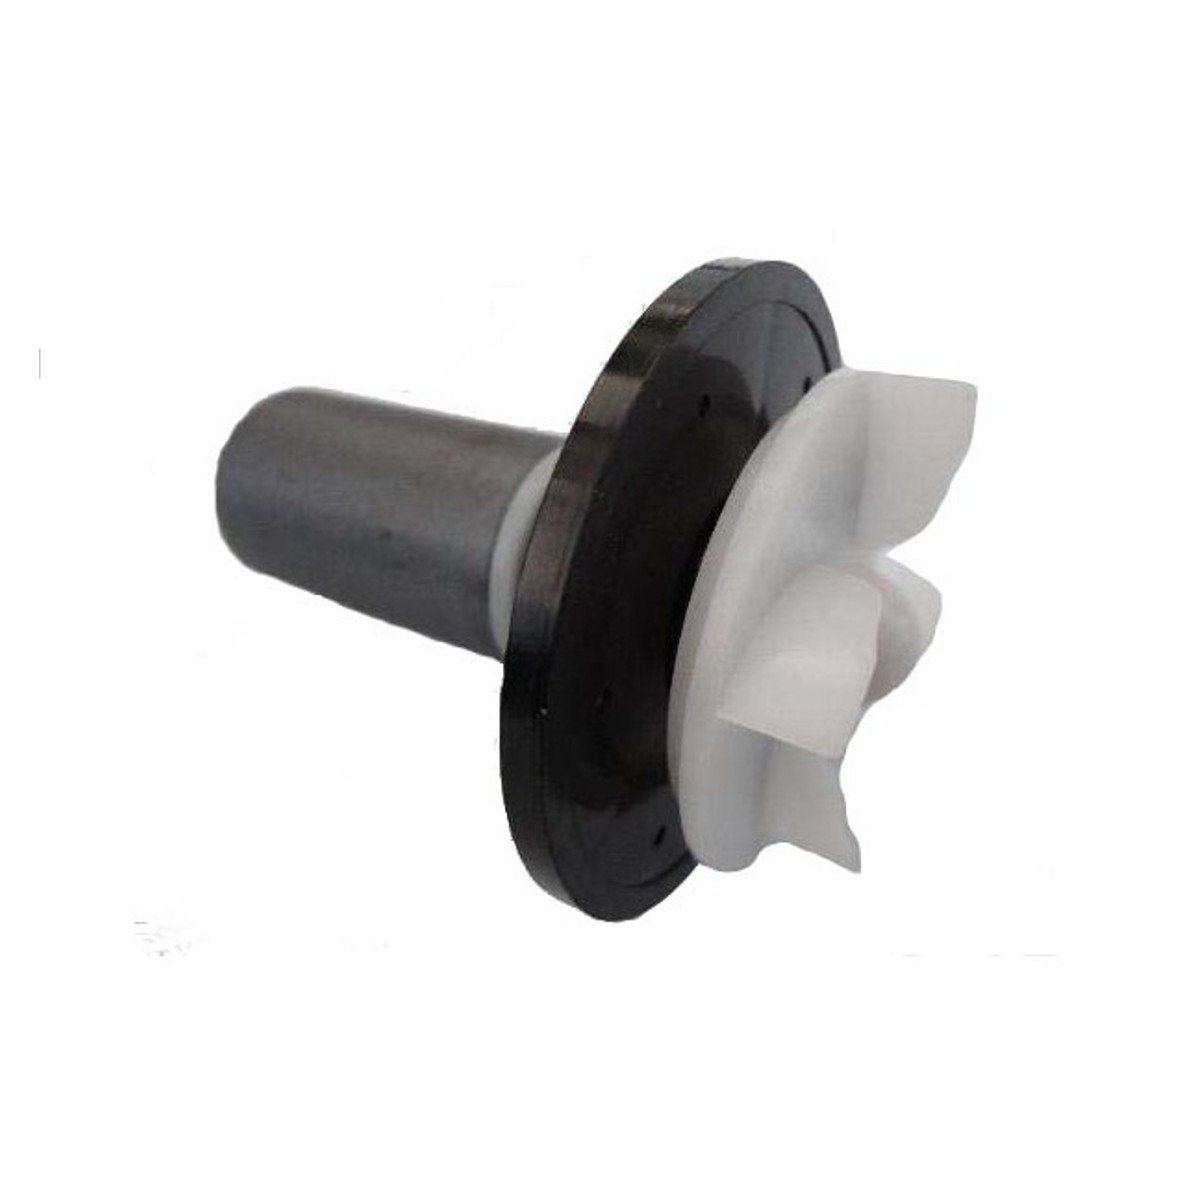 Impellor for AquaMax Eco 6000 (Part 35514) - Oase